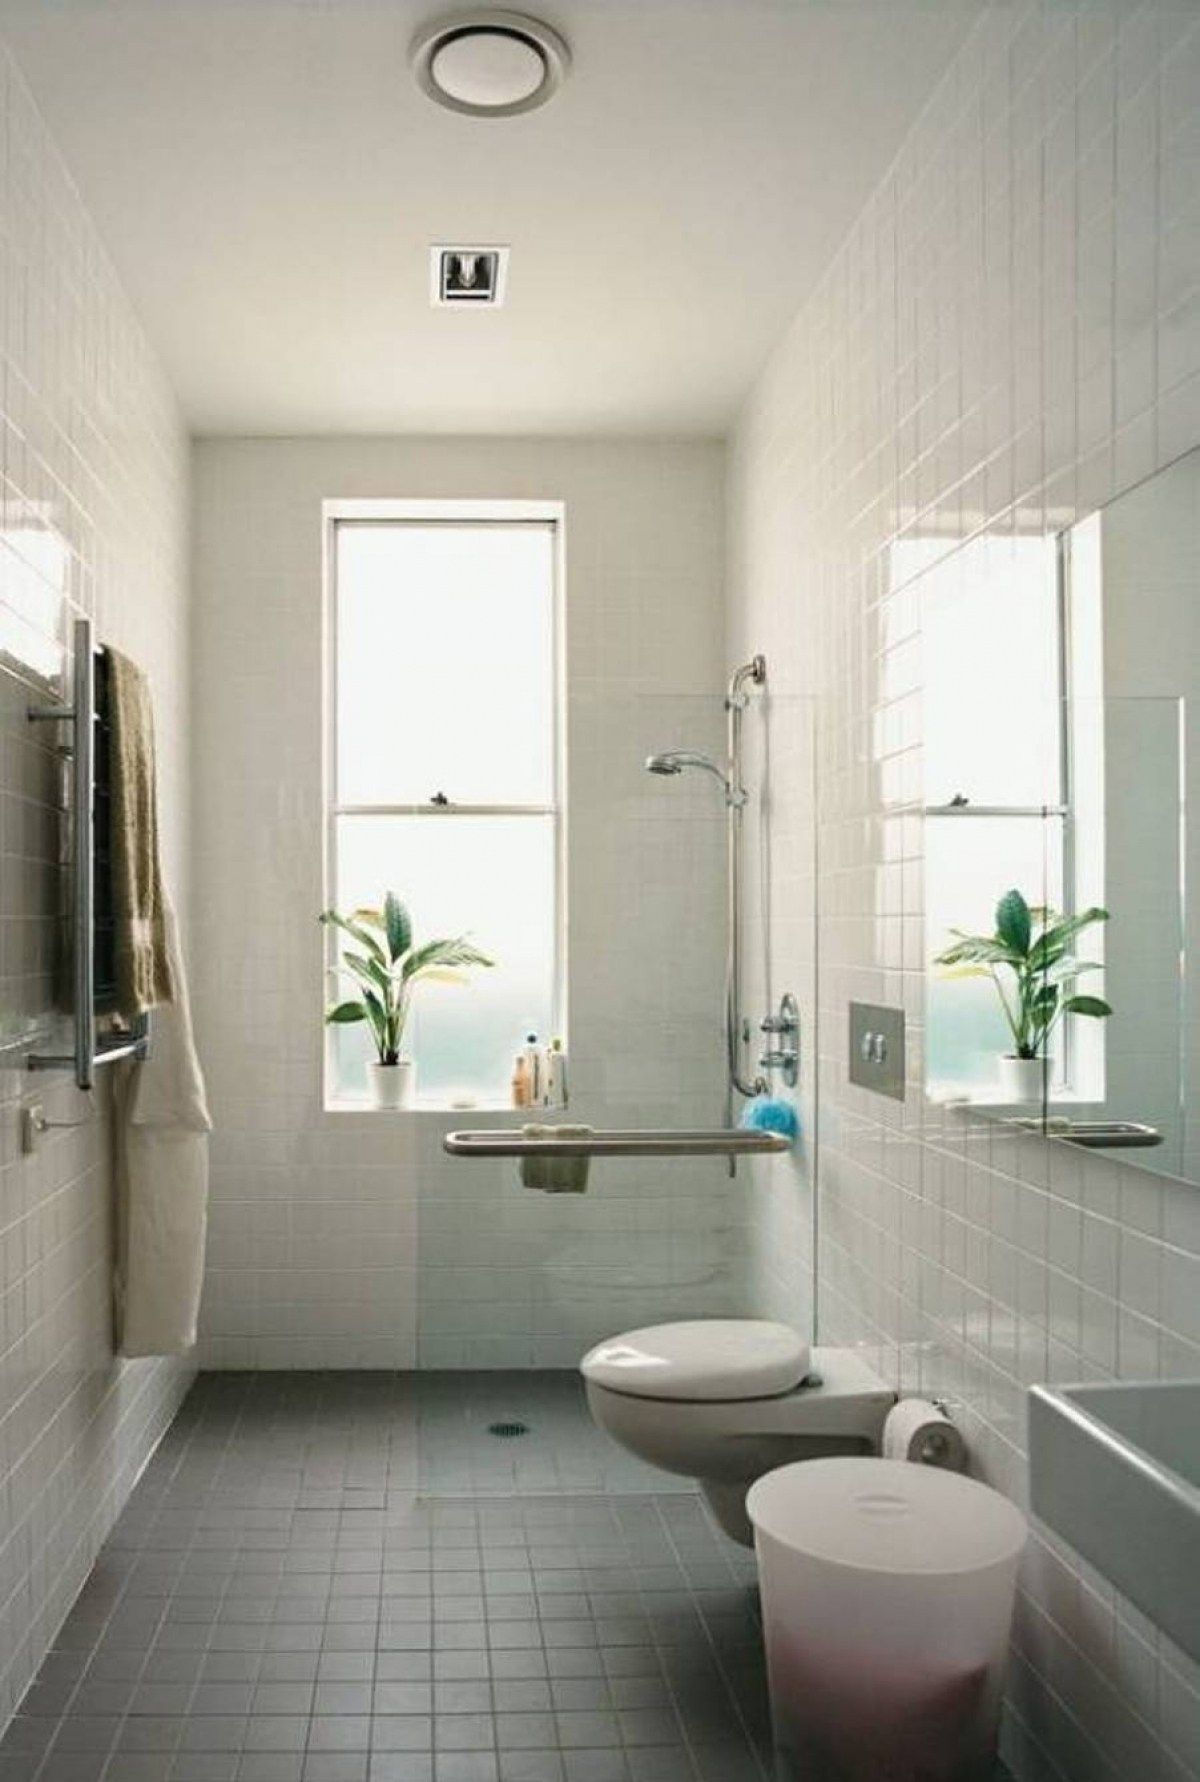 Bathroom small narrow bathroom ideas tub shower popular for Narrow bathroom ideas